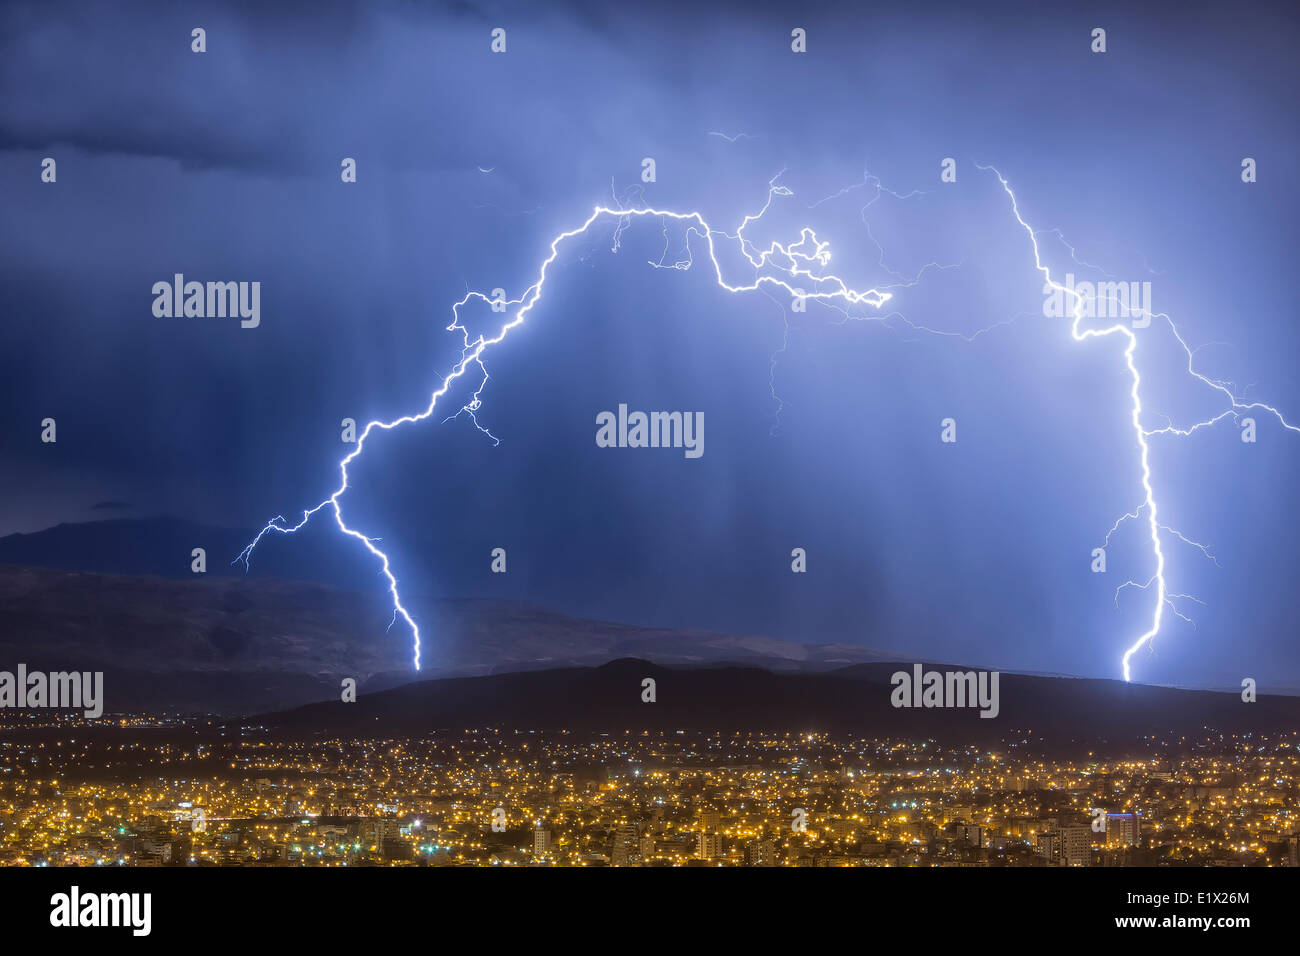 Lightning during a thunderstorm over the city of Cochabamba, Bolivia Stock Photo